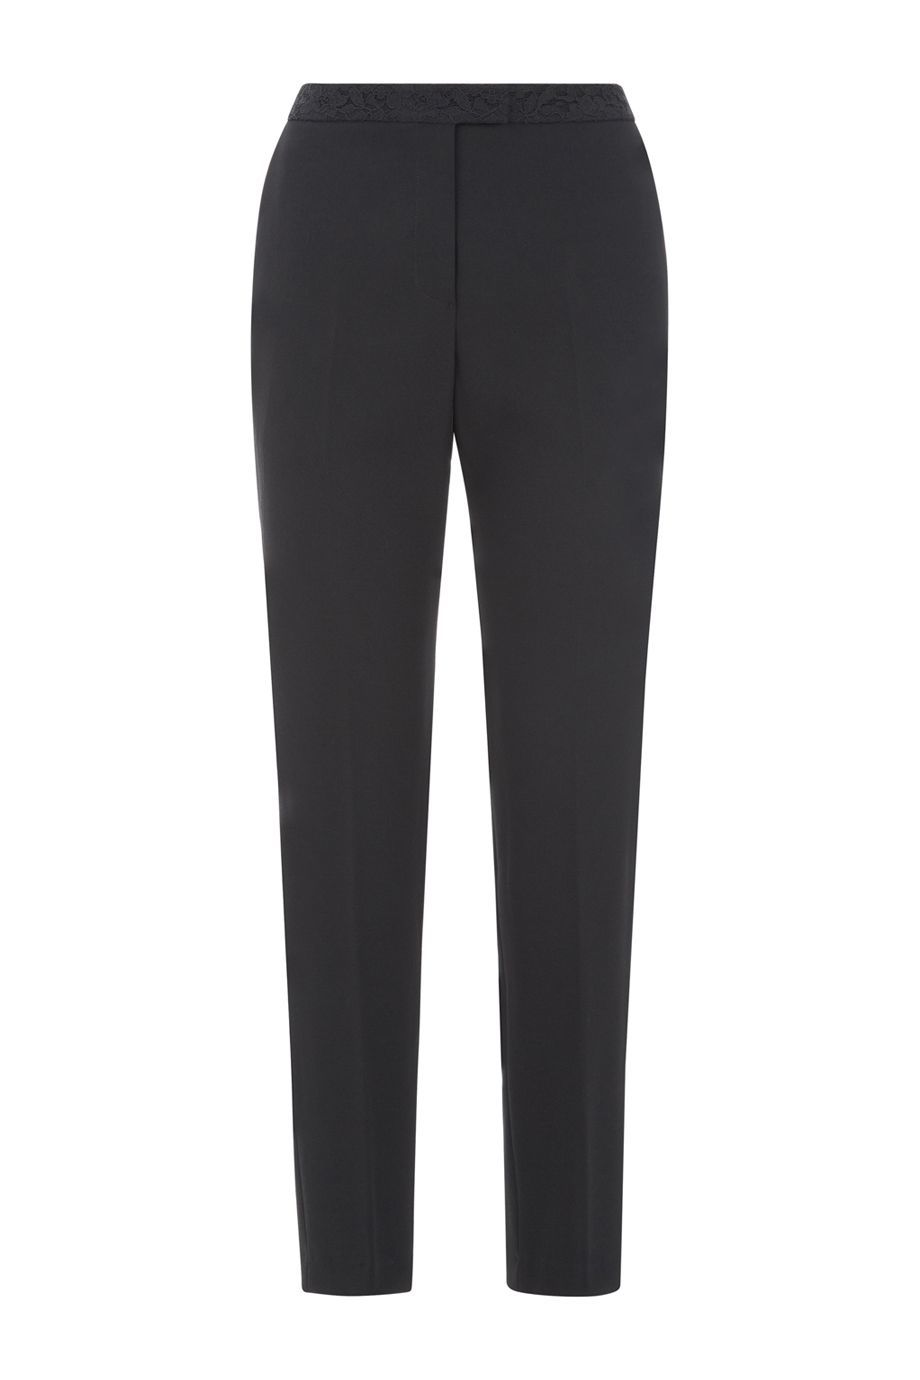 Marti Trouser, Black - length: standard; pattern: plain; waist: high rise; predominant colour: black; occasions: work; fibres: polyester/polyamide - 100%; waist detail: feature waist detail; texture group: crepes; fit: straight leg; pattern type: fabric; style: standard; season: a/w 2015; wardrobe: basic